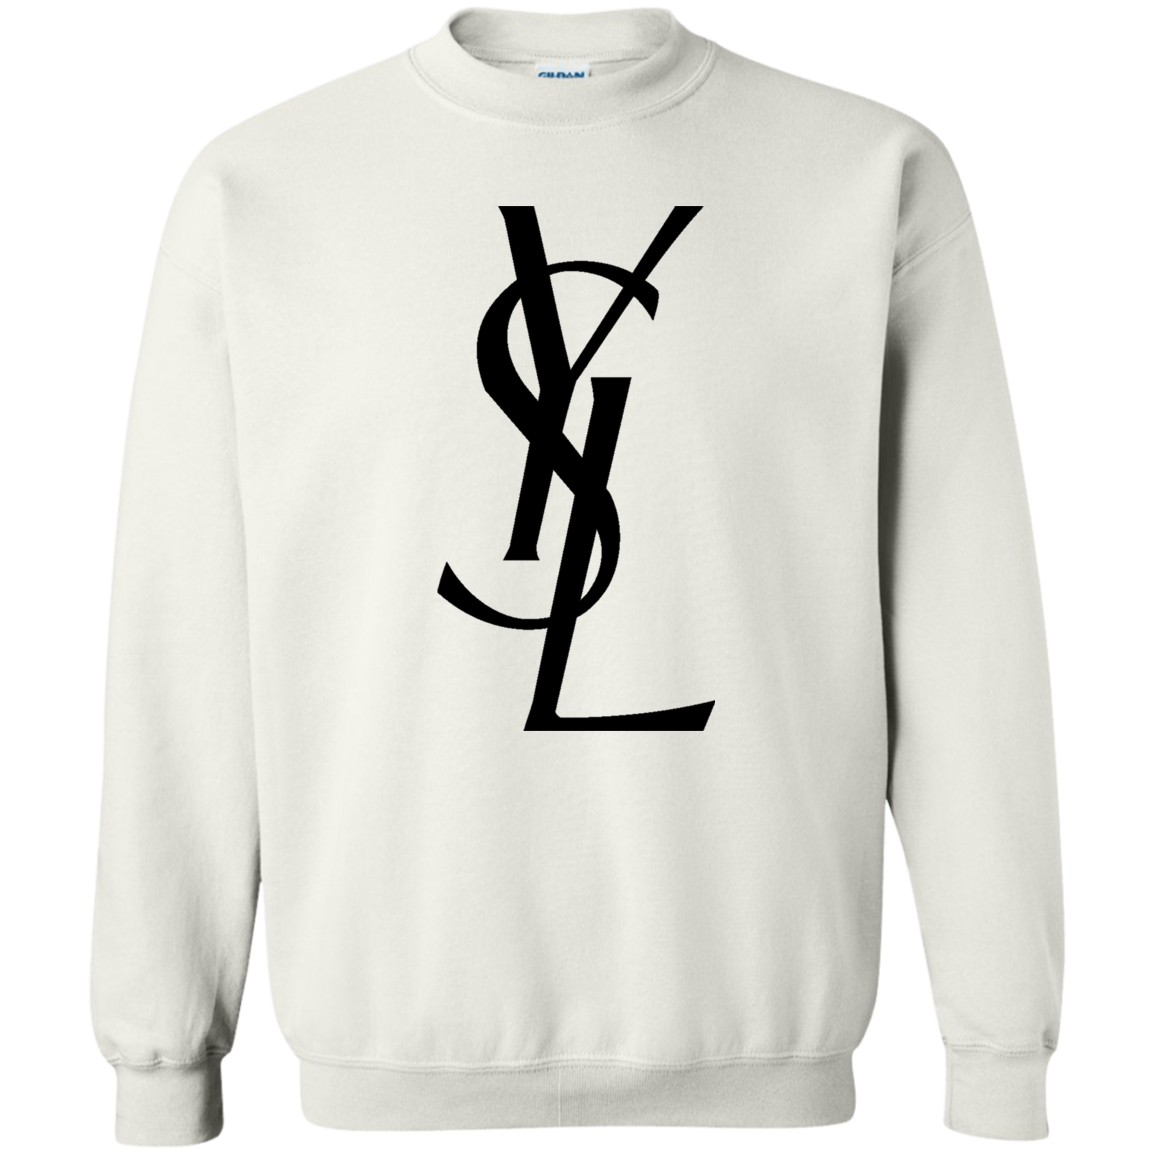 Ysl Sweater Sweatshirt